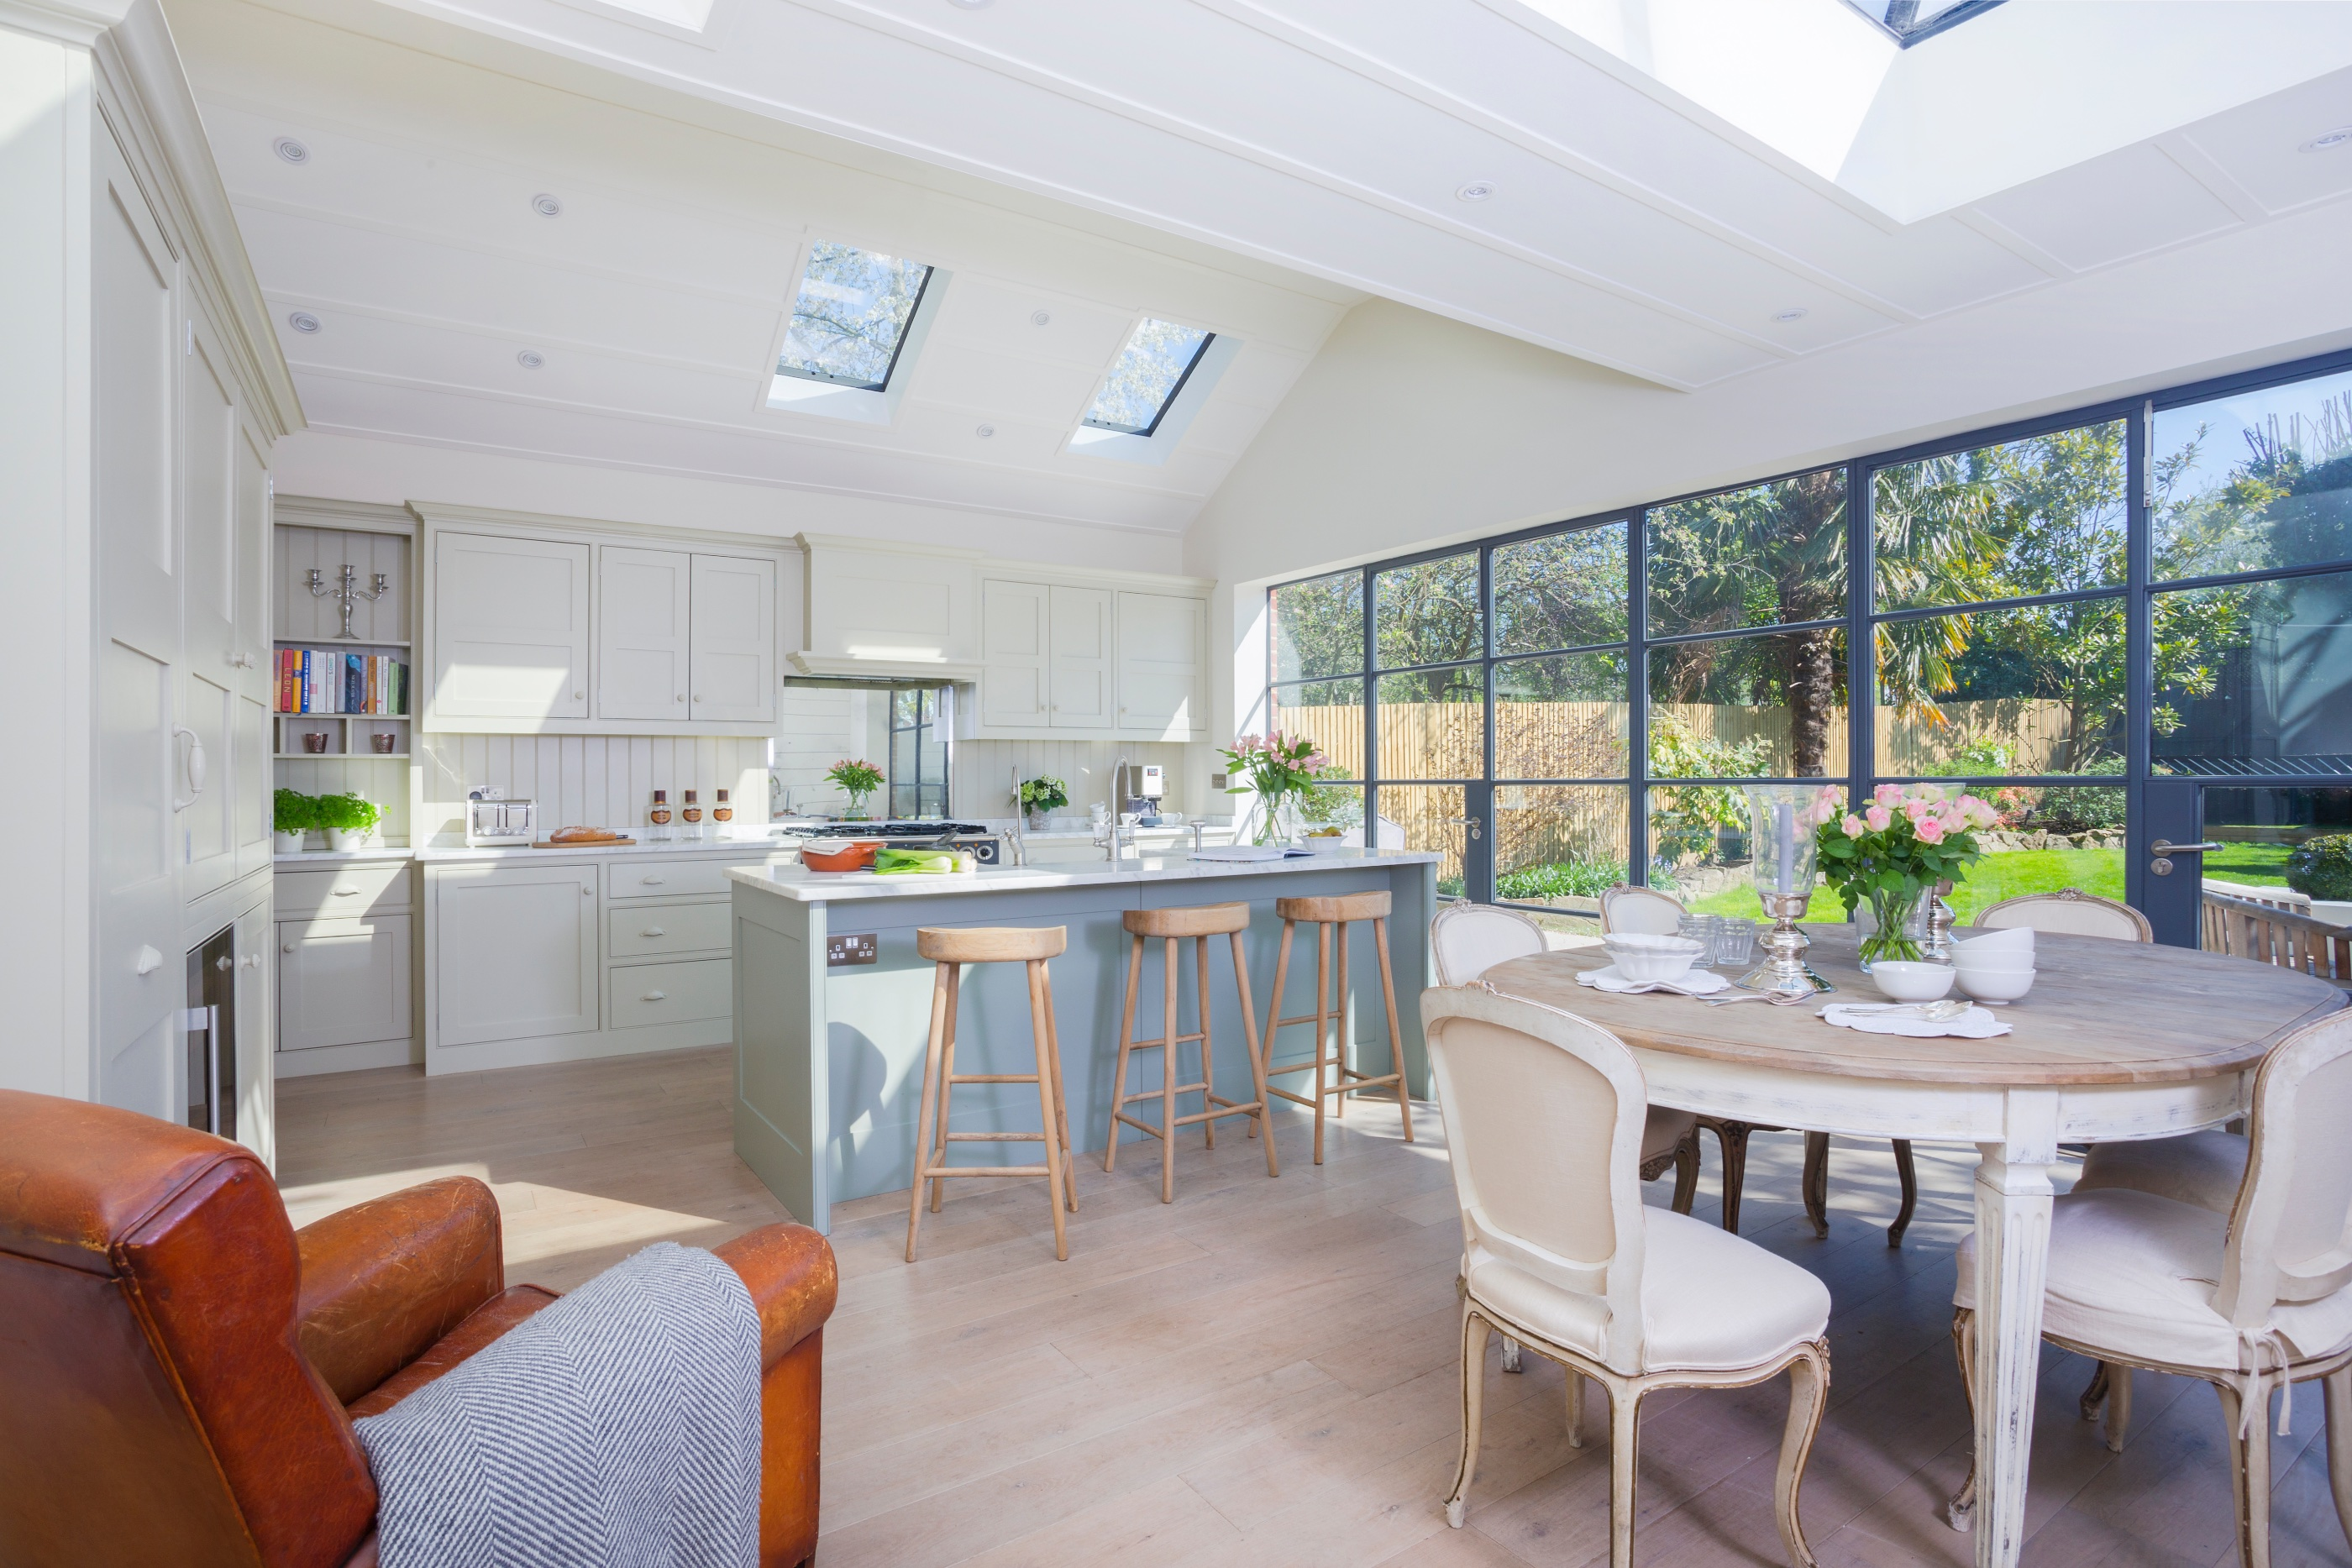 Open bespoke kitchen with island and open shelves with carrara worktops throughout and glass doors to garden.